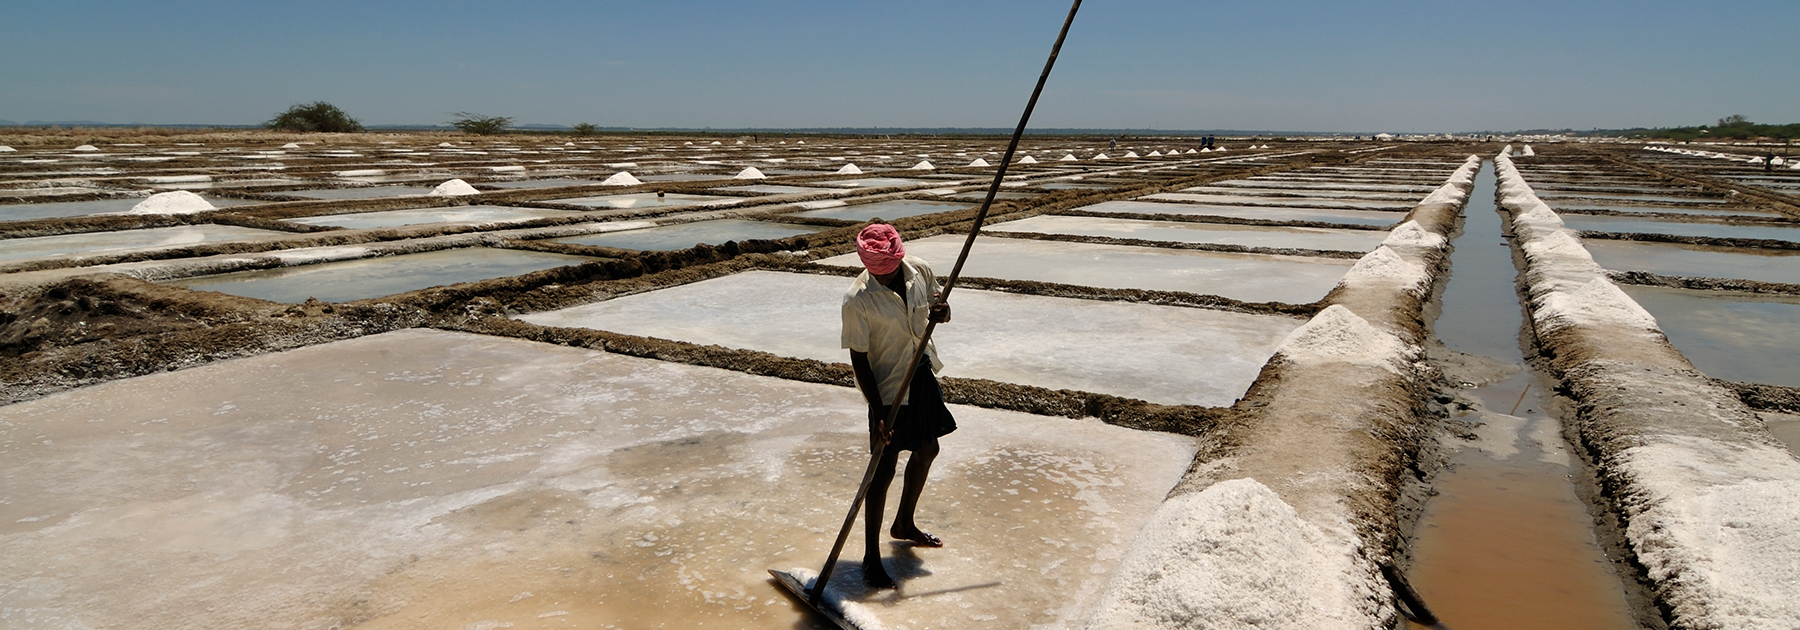 Salt pans in Marakkanam where sea water is pumped into large pans and dried. (Sandip Dey, licensed under CC BY-SA 3.0)